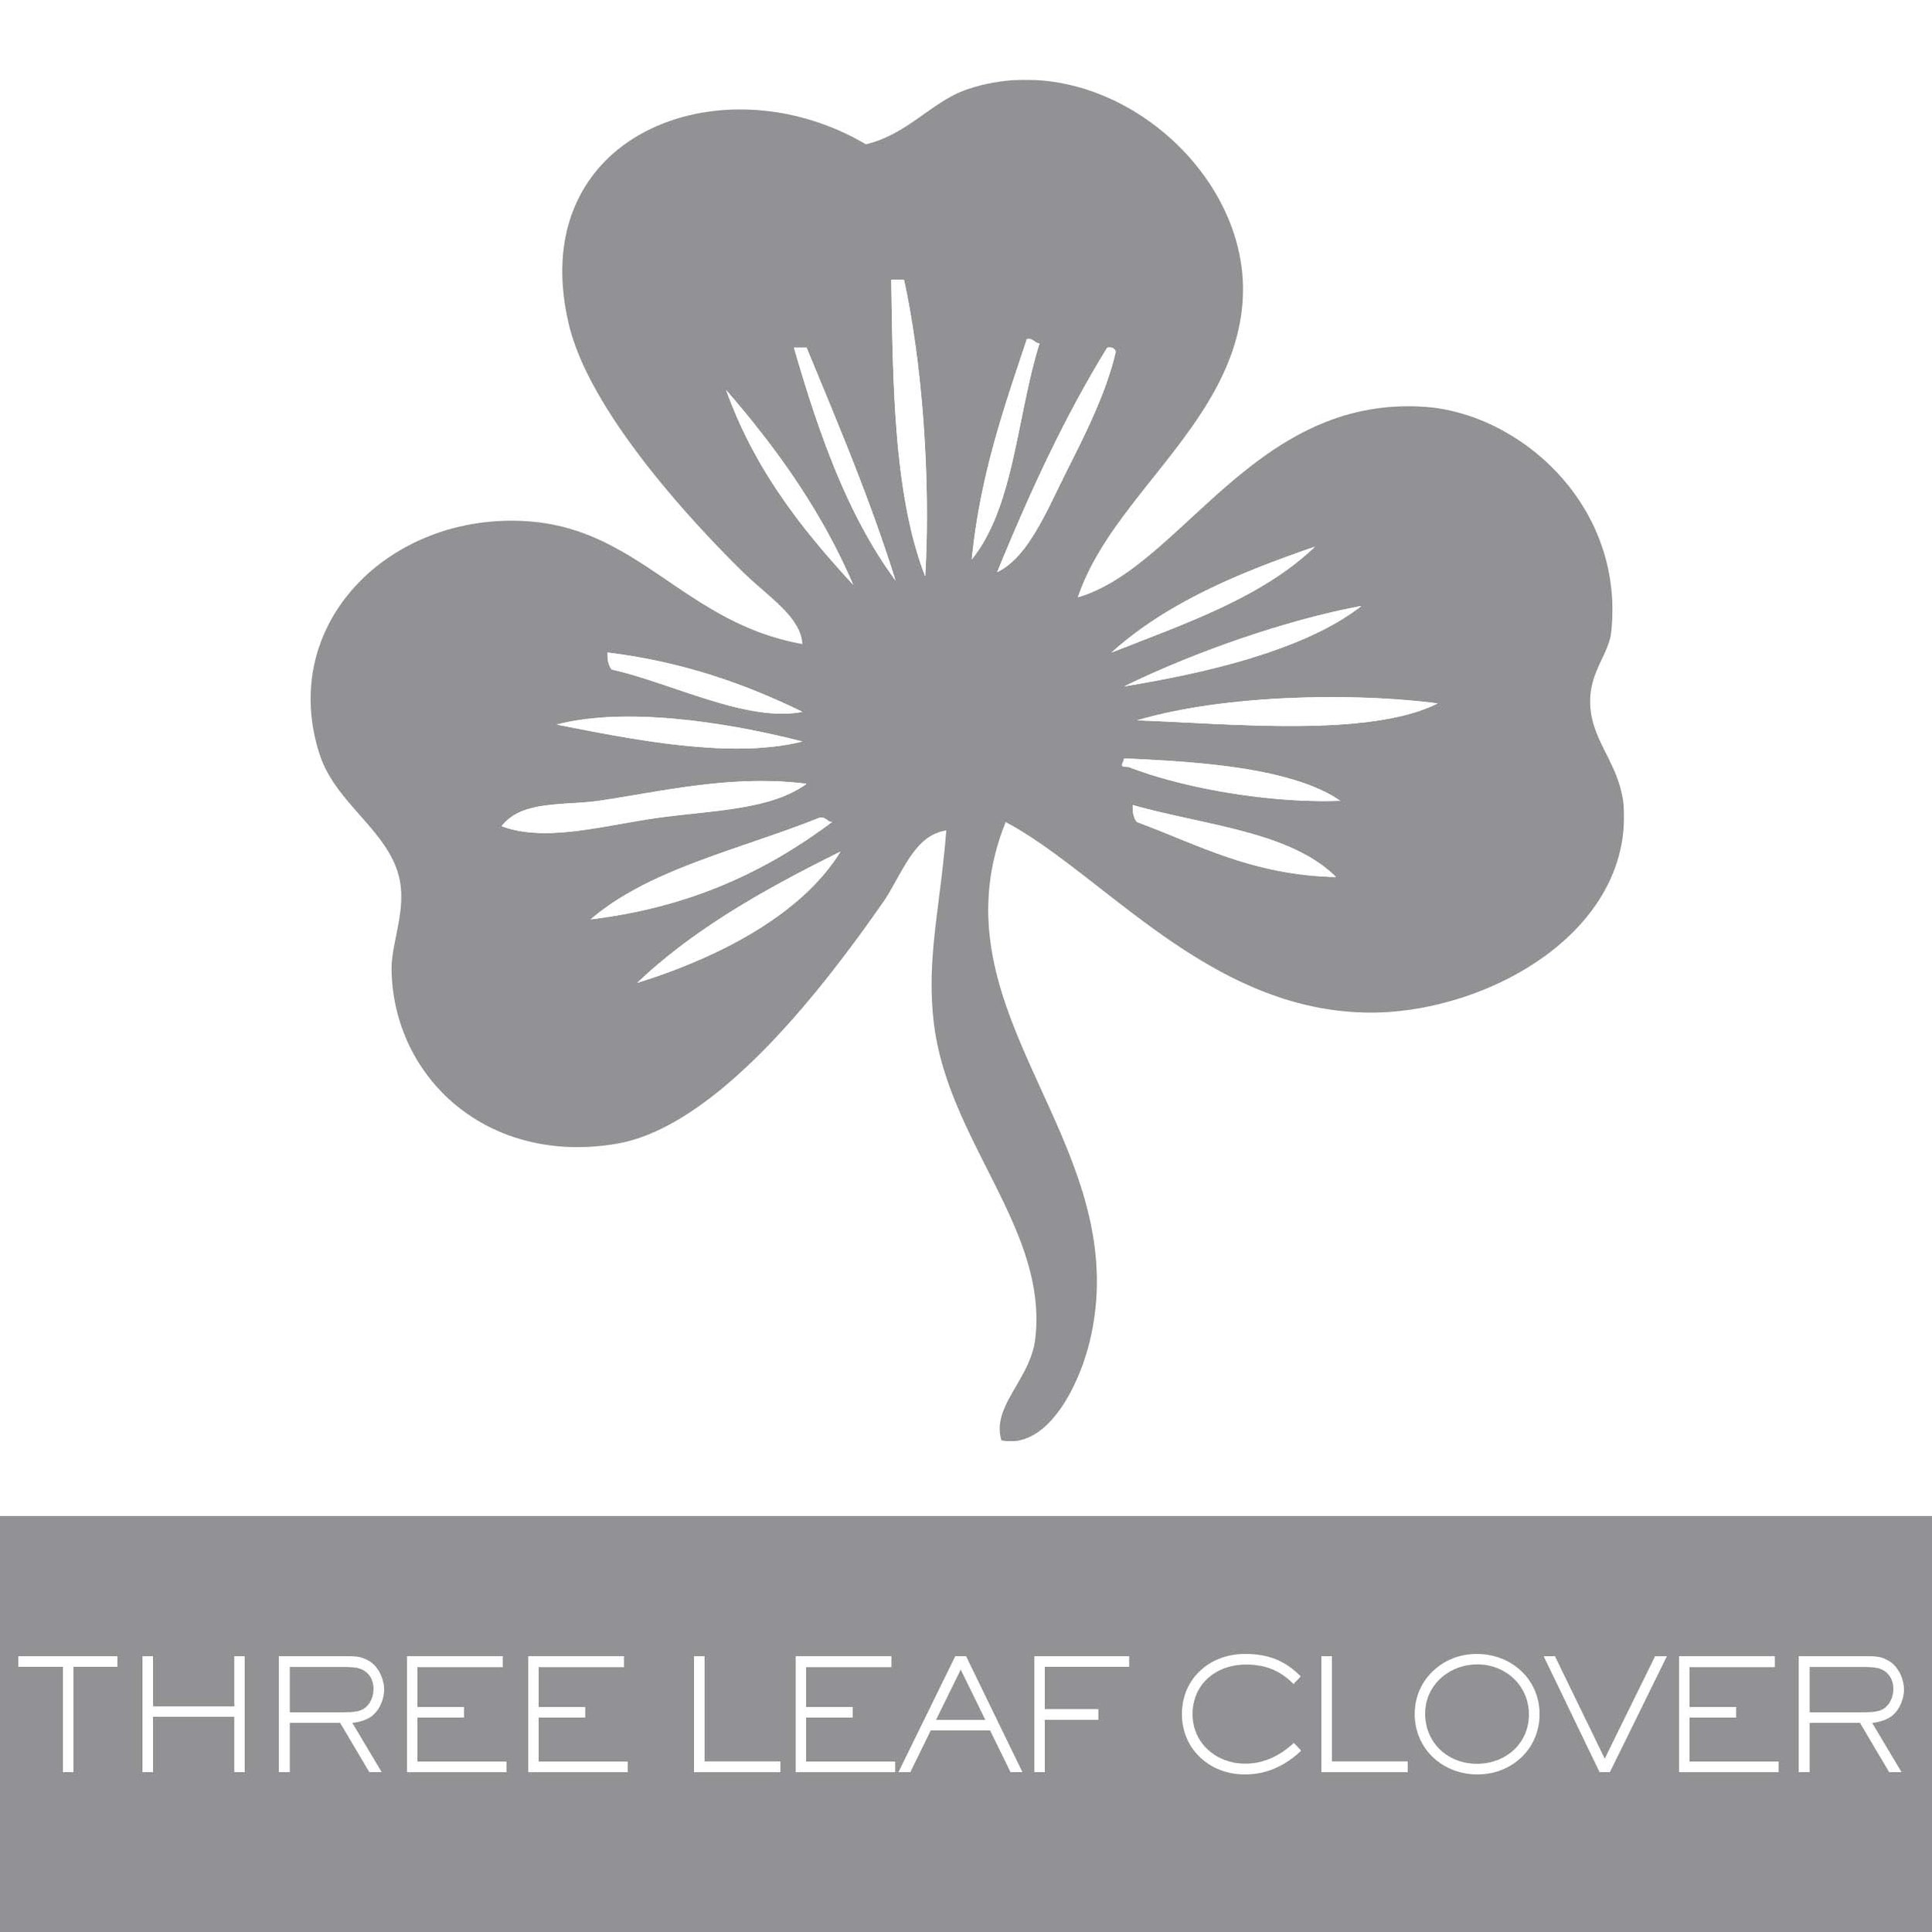 threeleafclover.jpg